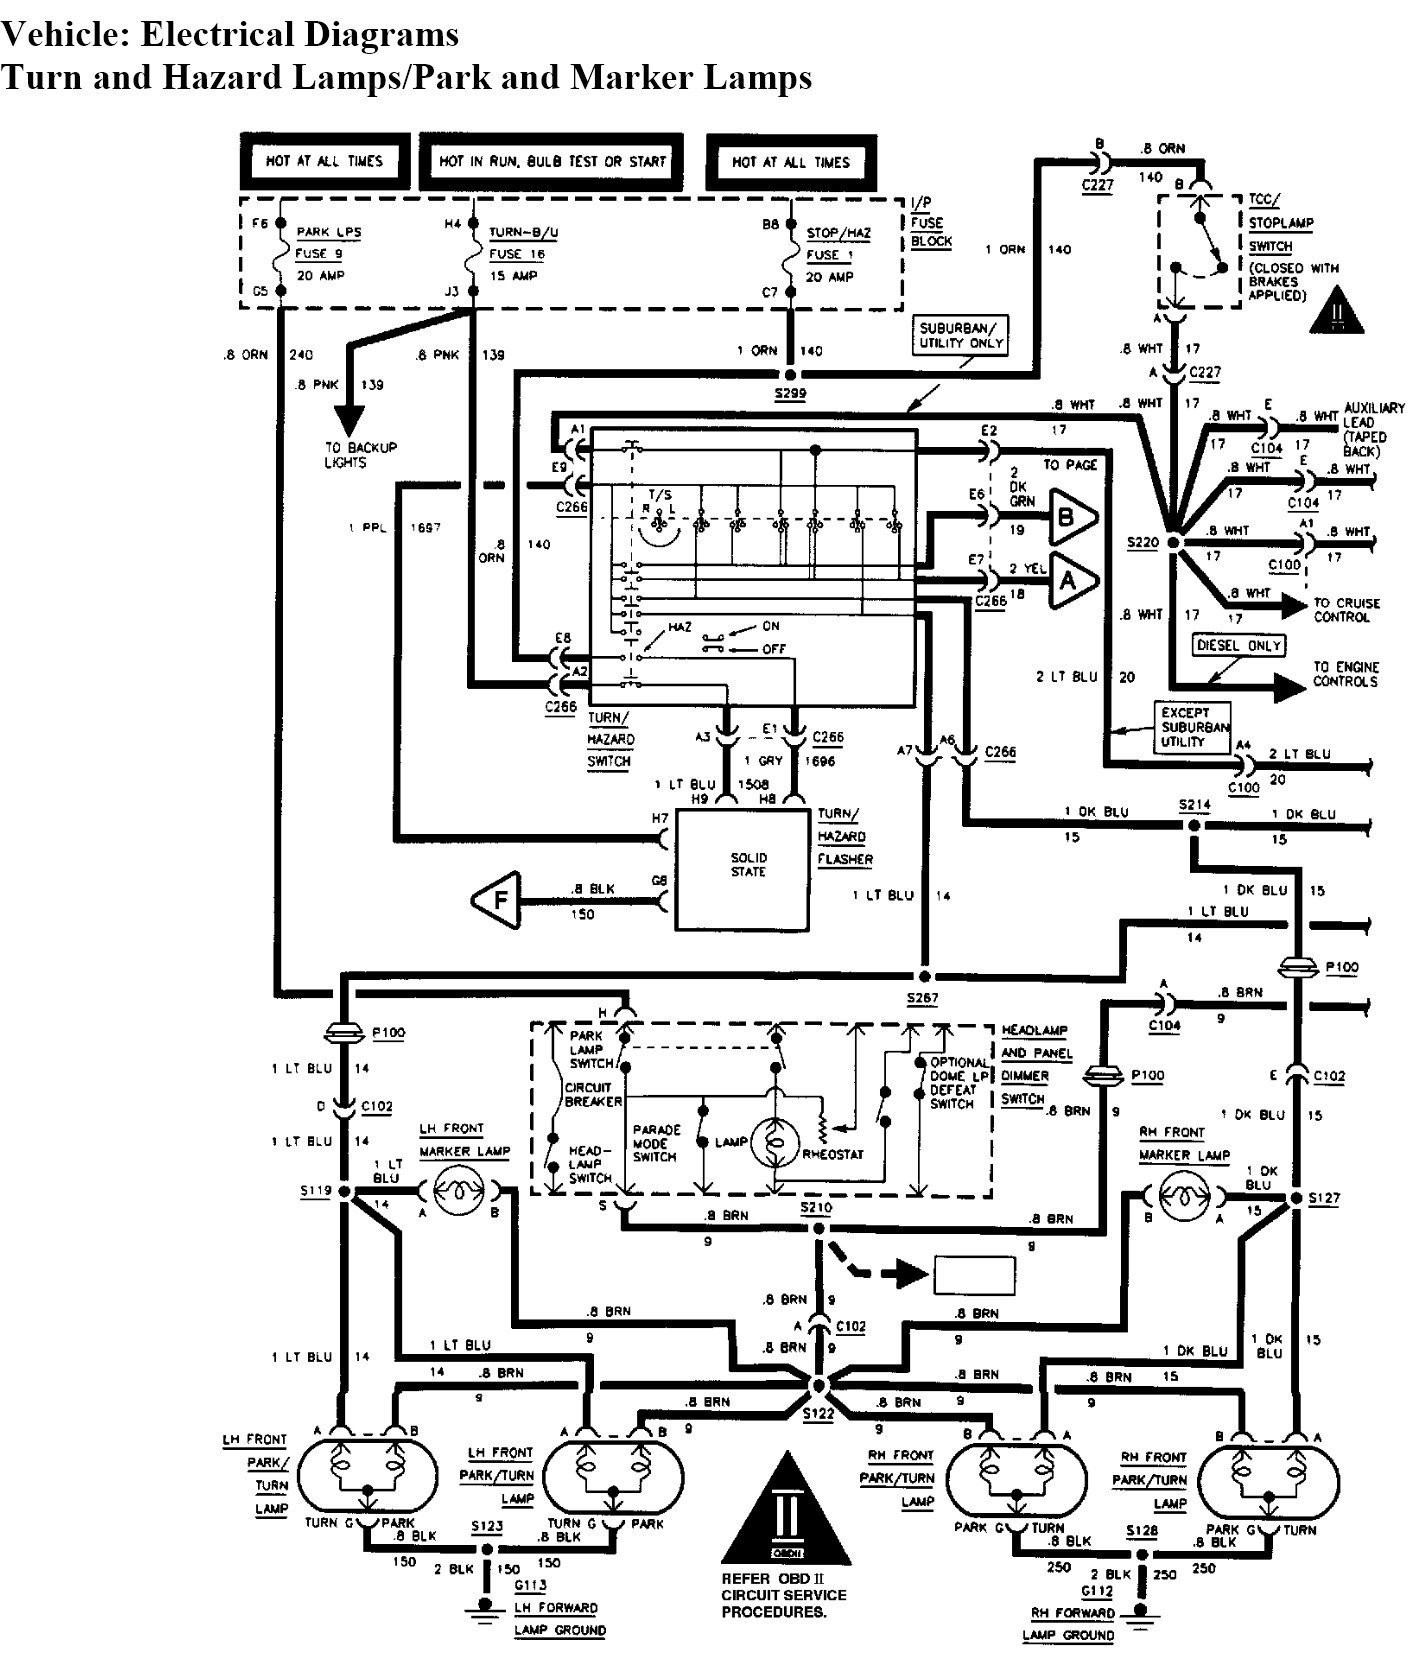 2003 chevy silverado tail light wiring diagram 2000 chevy